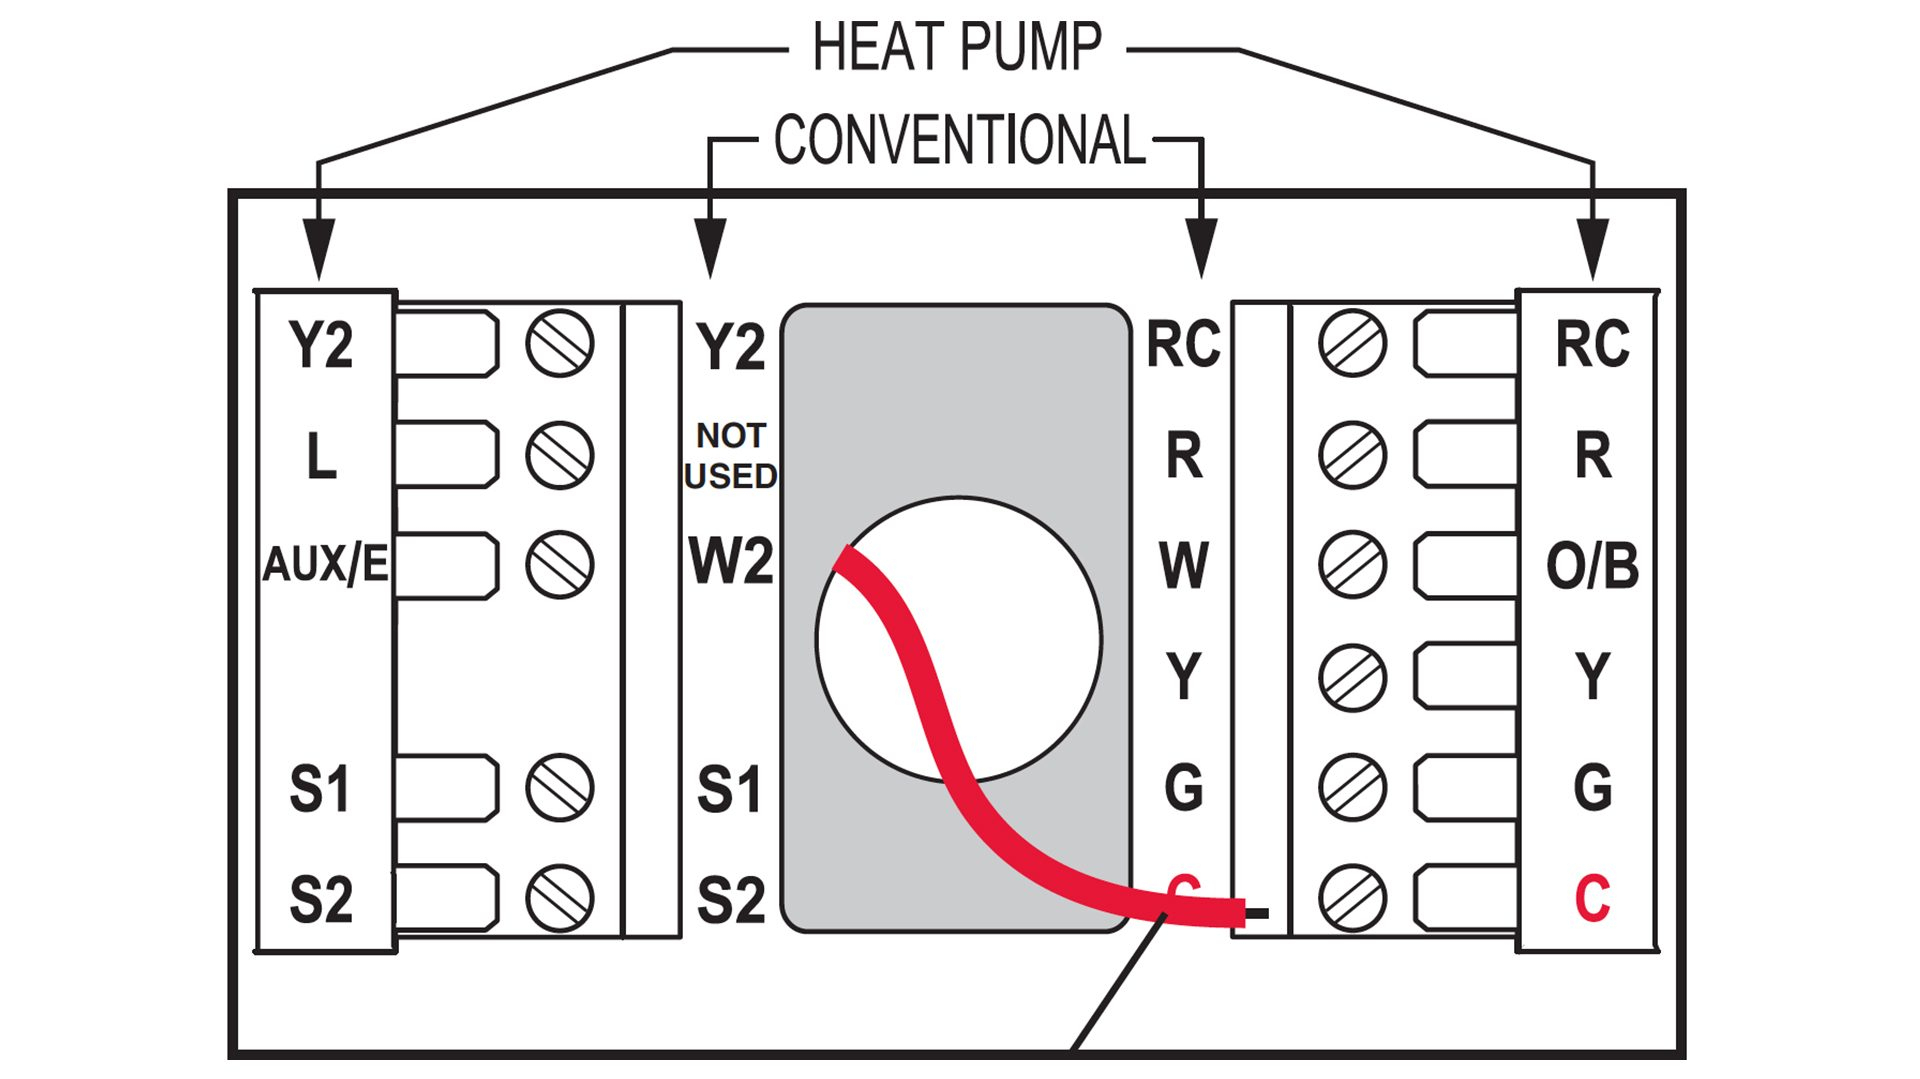 Honeywell Thermostat Wiring X Heat Pump Thermostat Wiring Diagram - Wiring Diagram For Thermostats